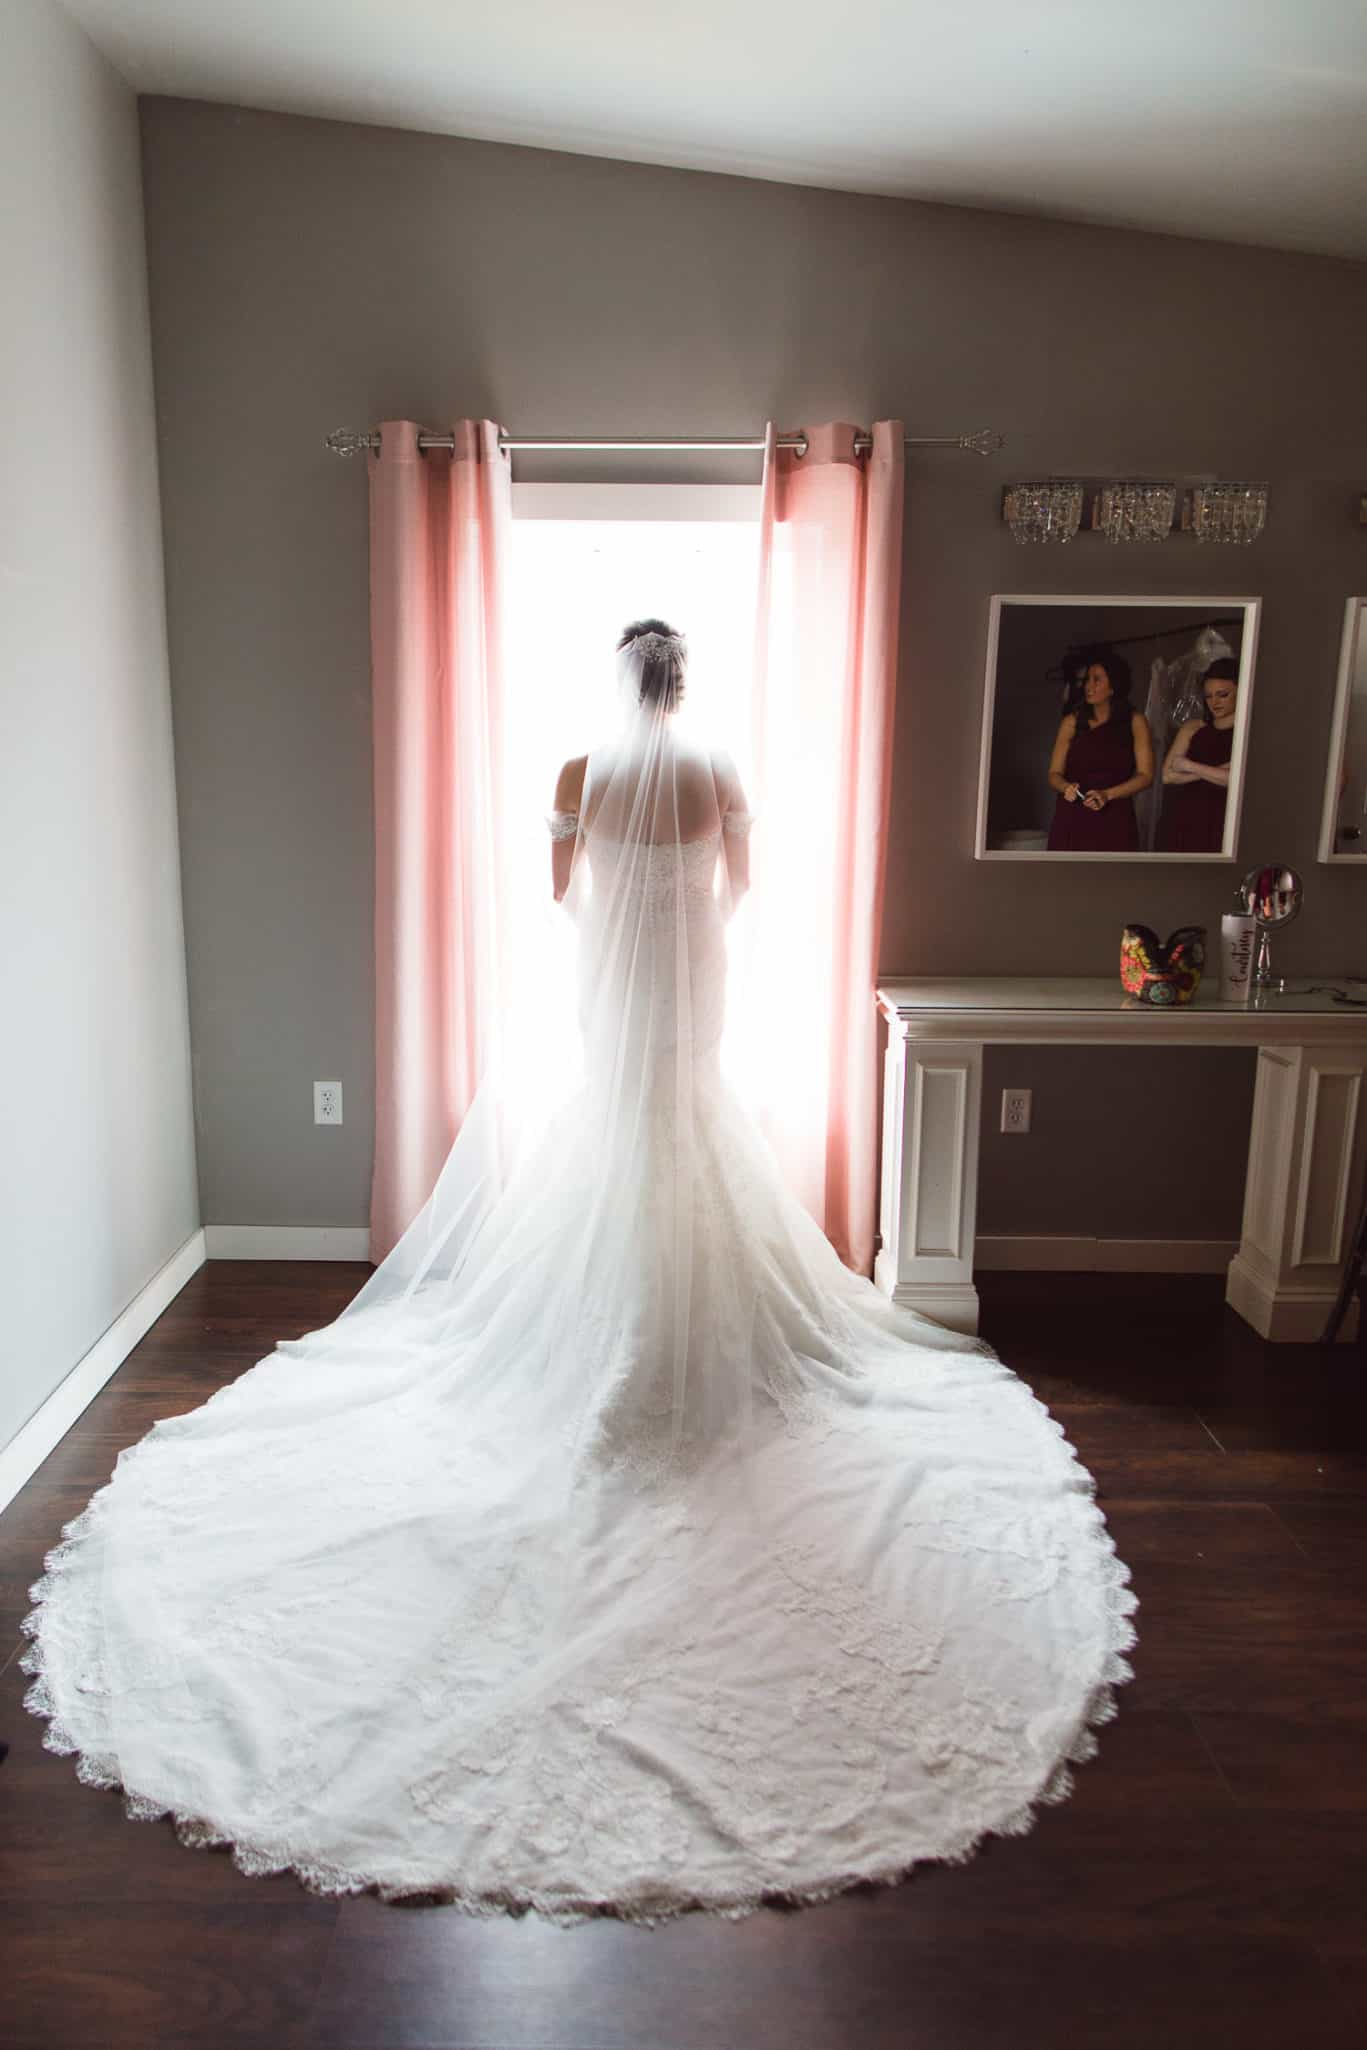 Getting ready in the bridal suite at Mia's bridal provided gorgeous suits for wedding at The Farms at Woodend Springs wedding venue in Bonner Springs Kansas